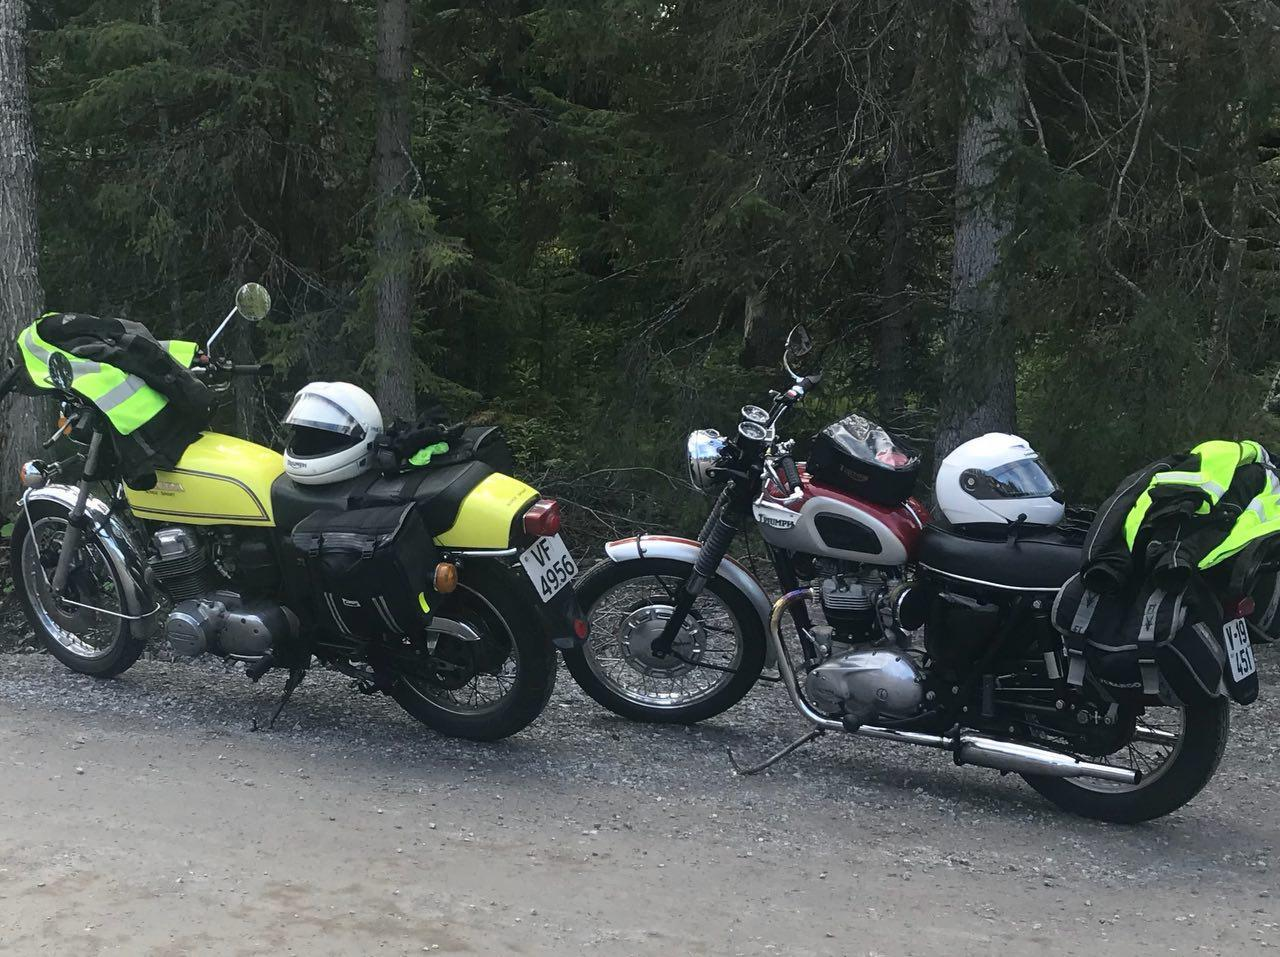 honda cb750f in sweden